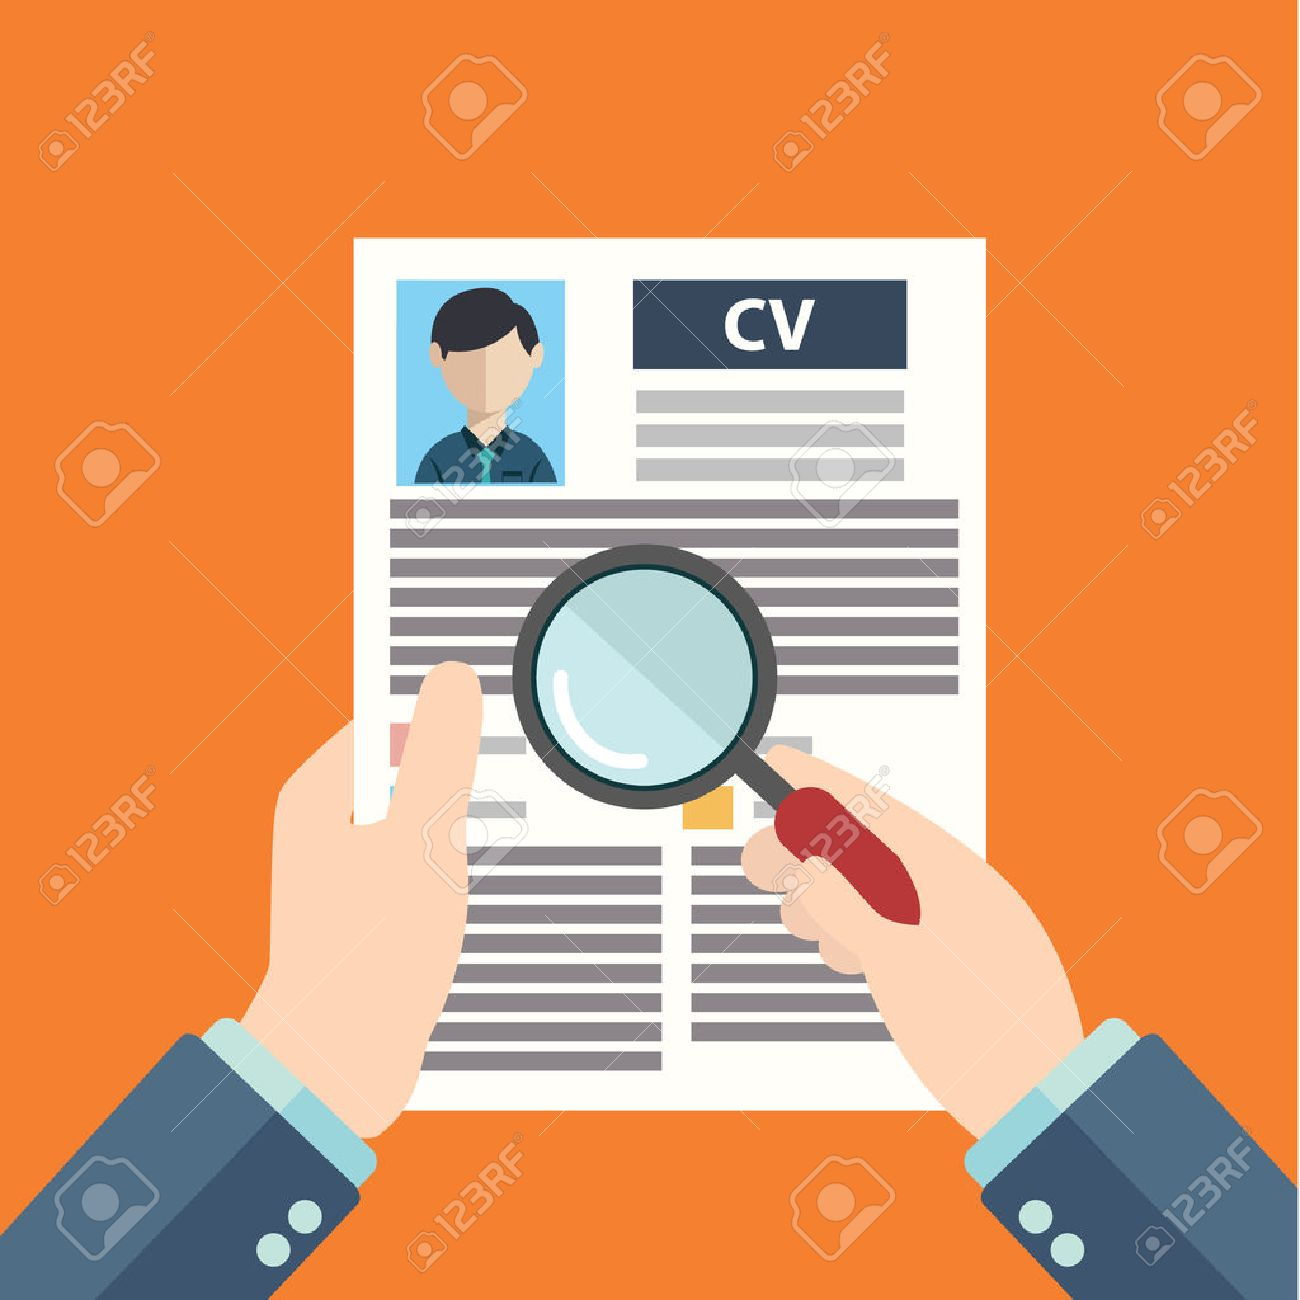 Flat design style modern vector illustration concept of human resources management, finding professional staff, head hunter job, employment issue and analyzing personnel resume - 37863668